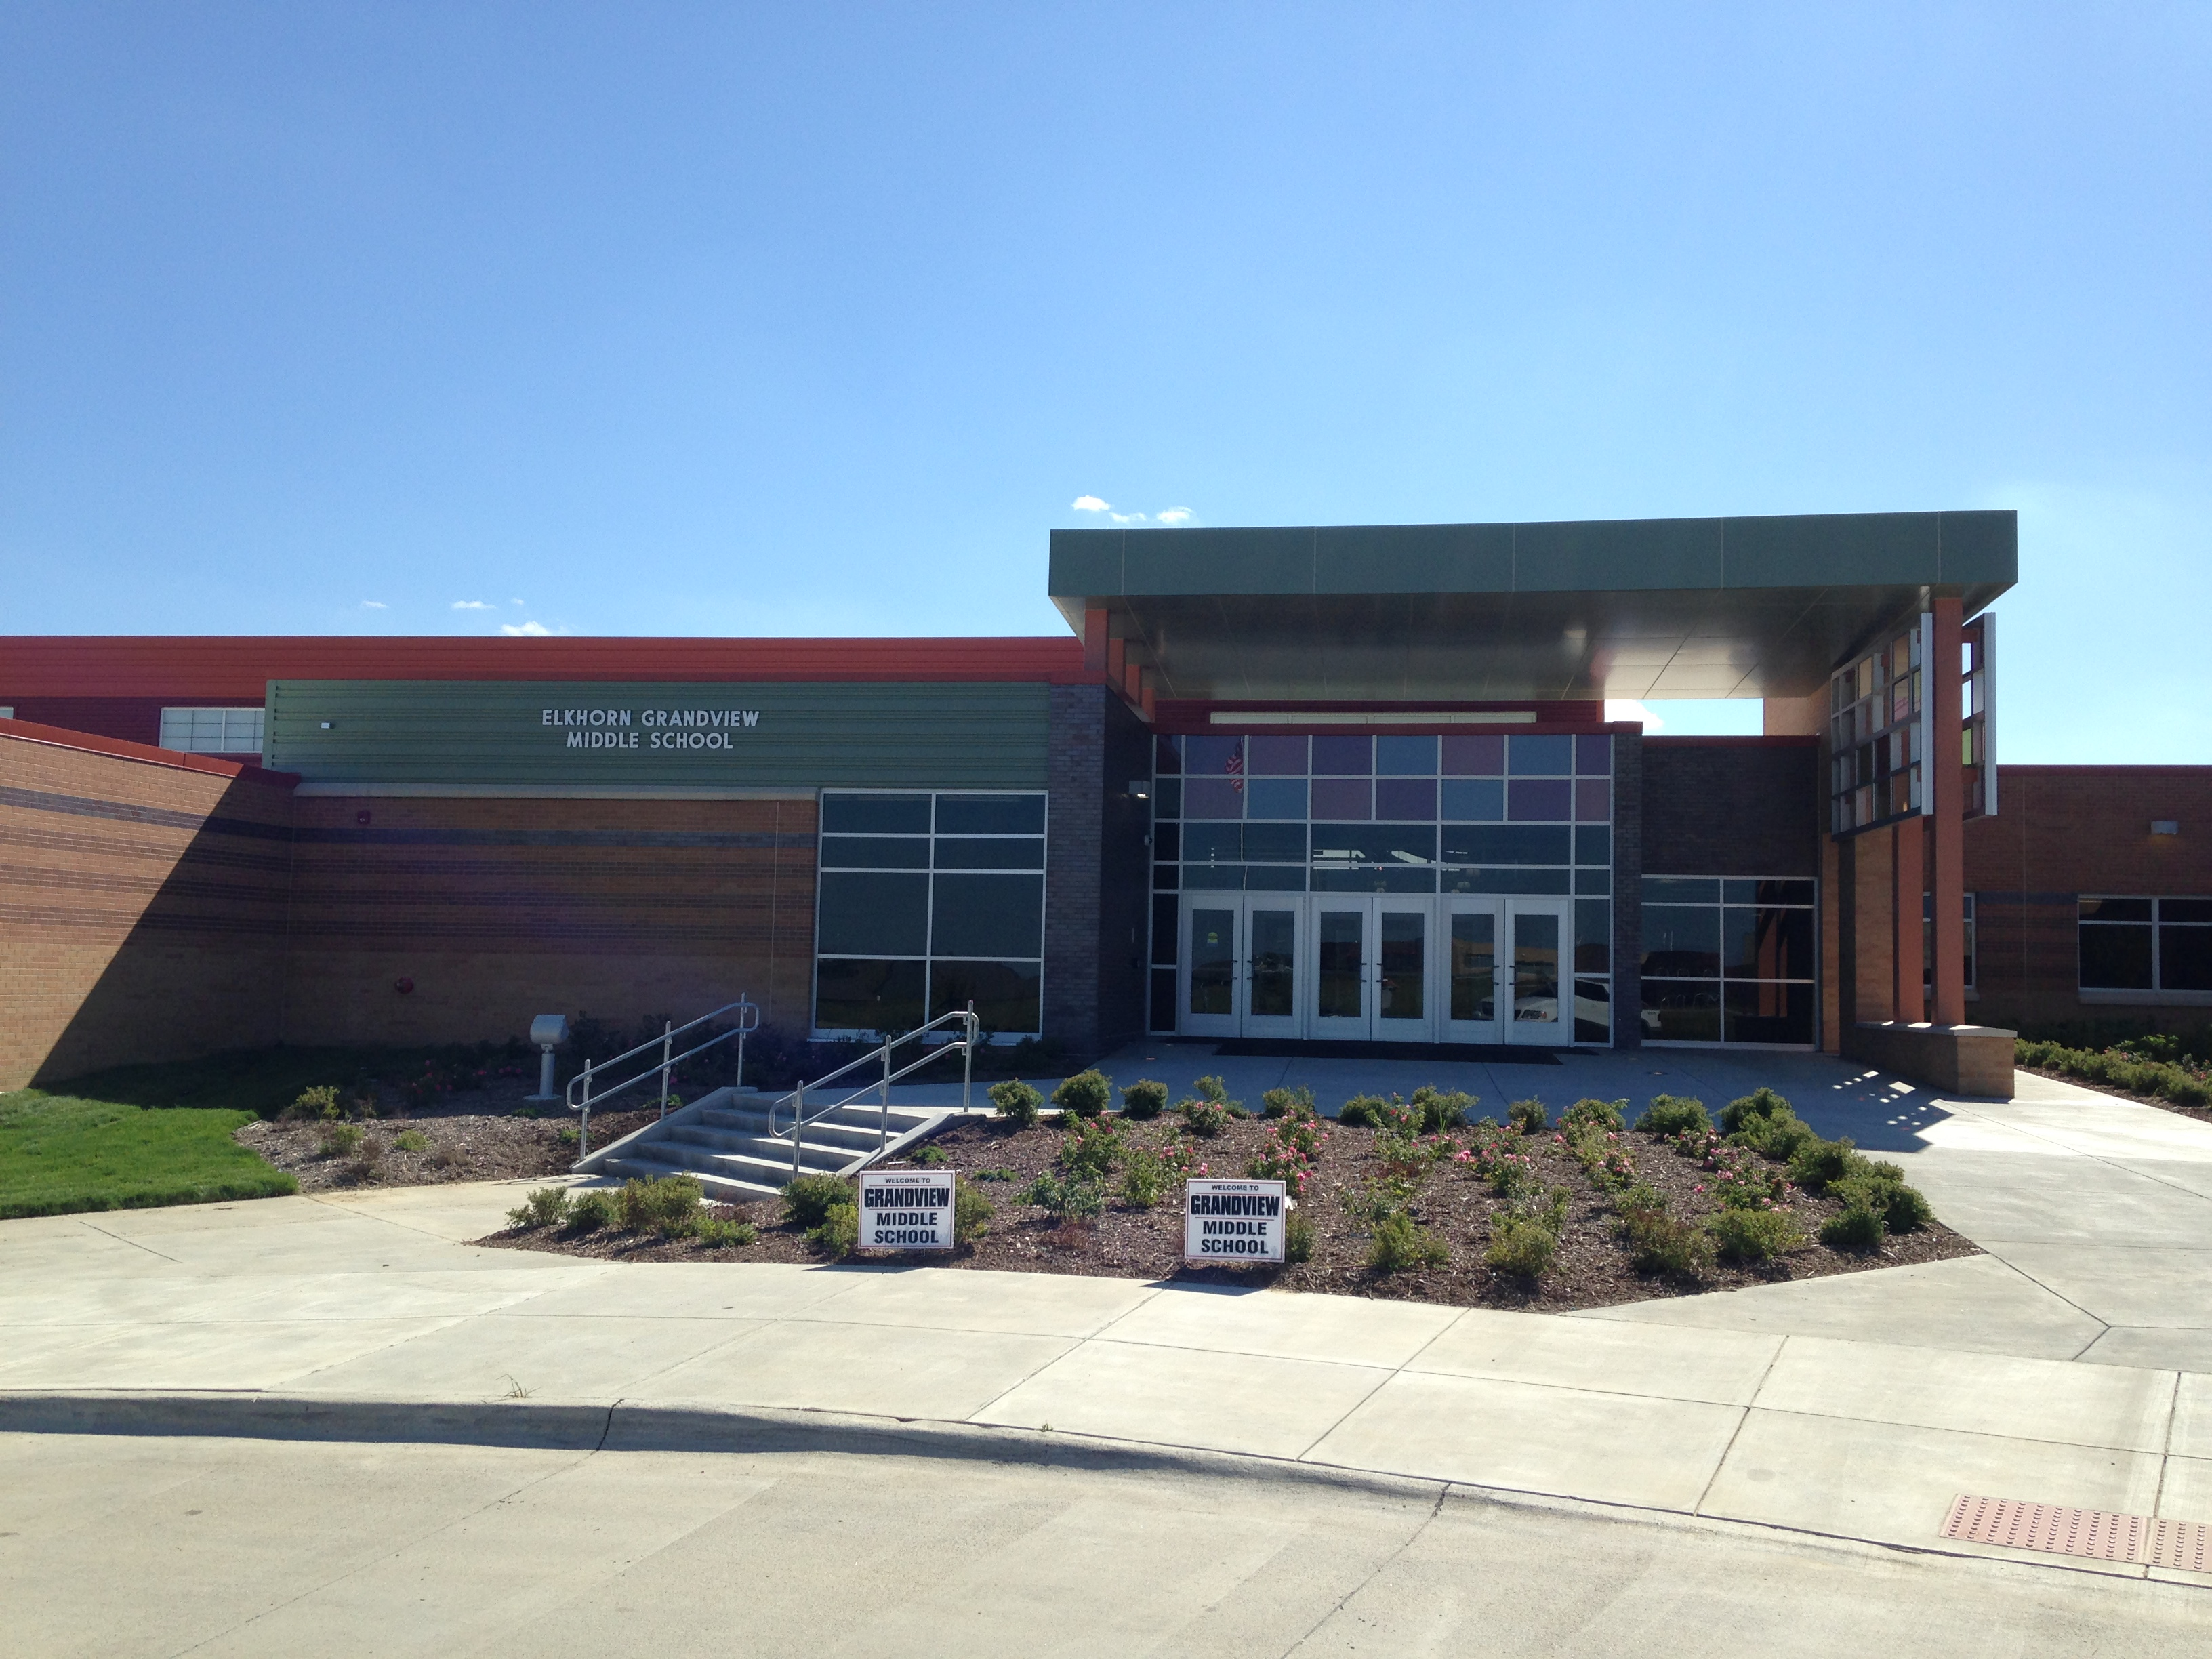 Elkhorn Grandview Middle School